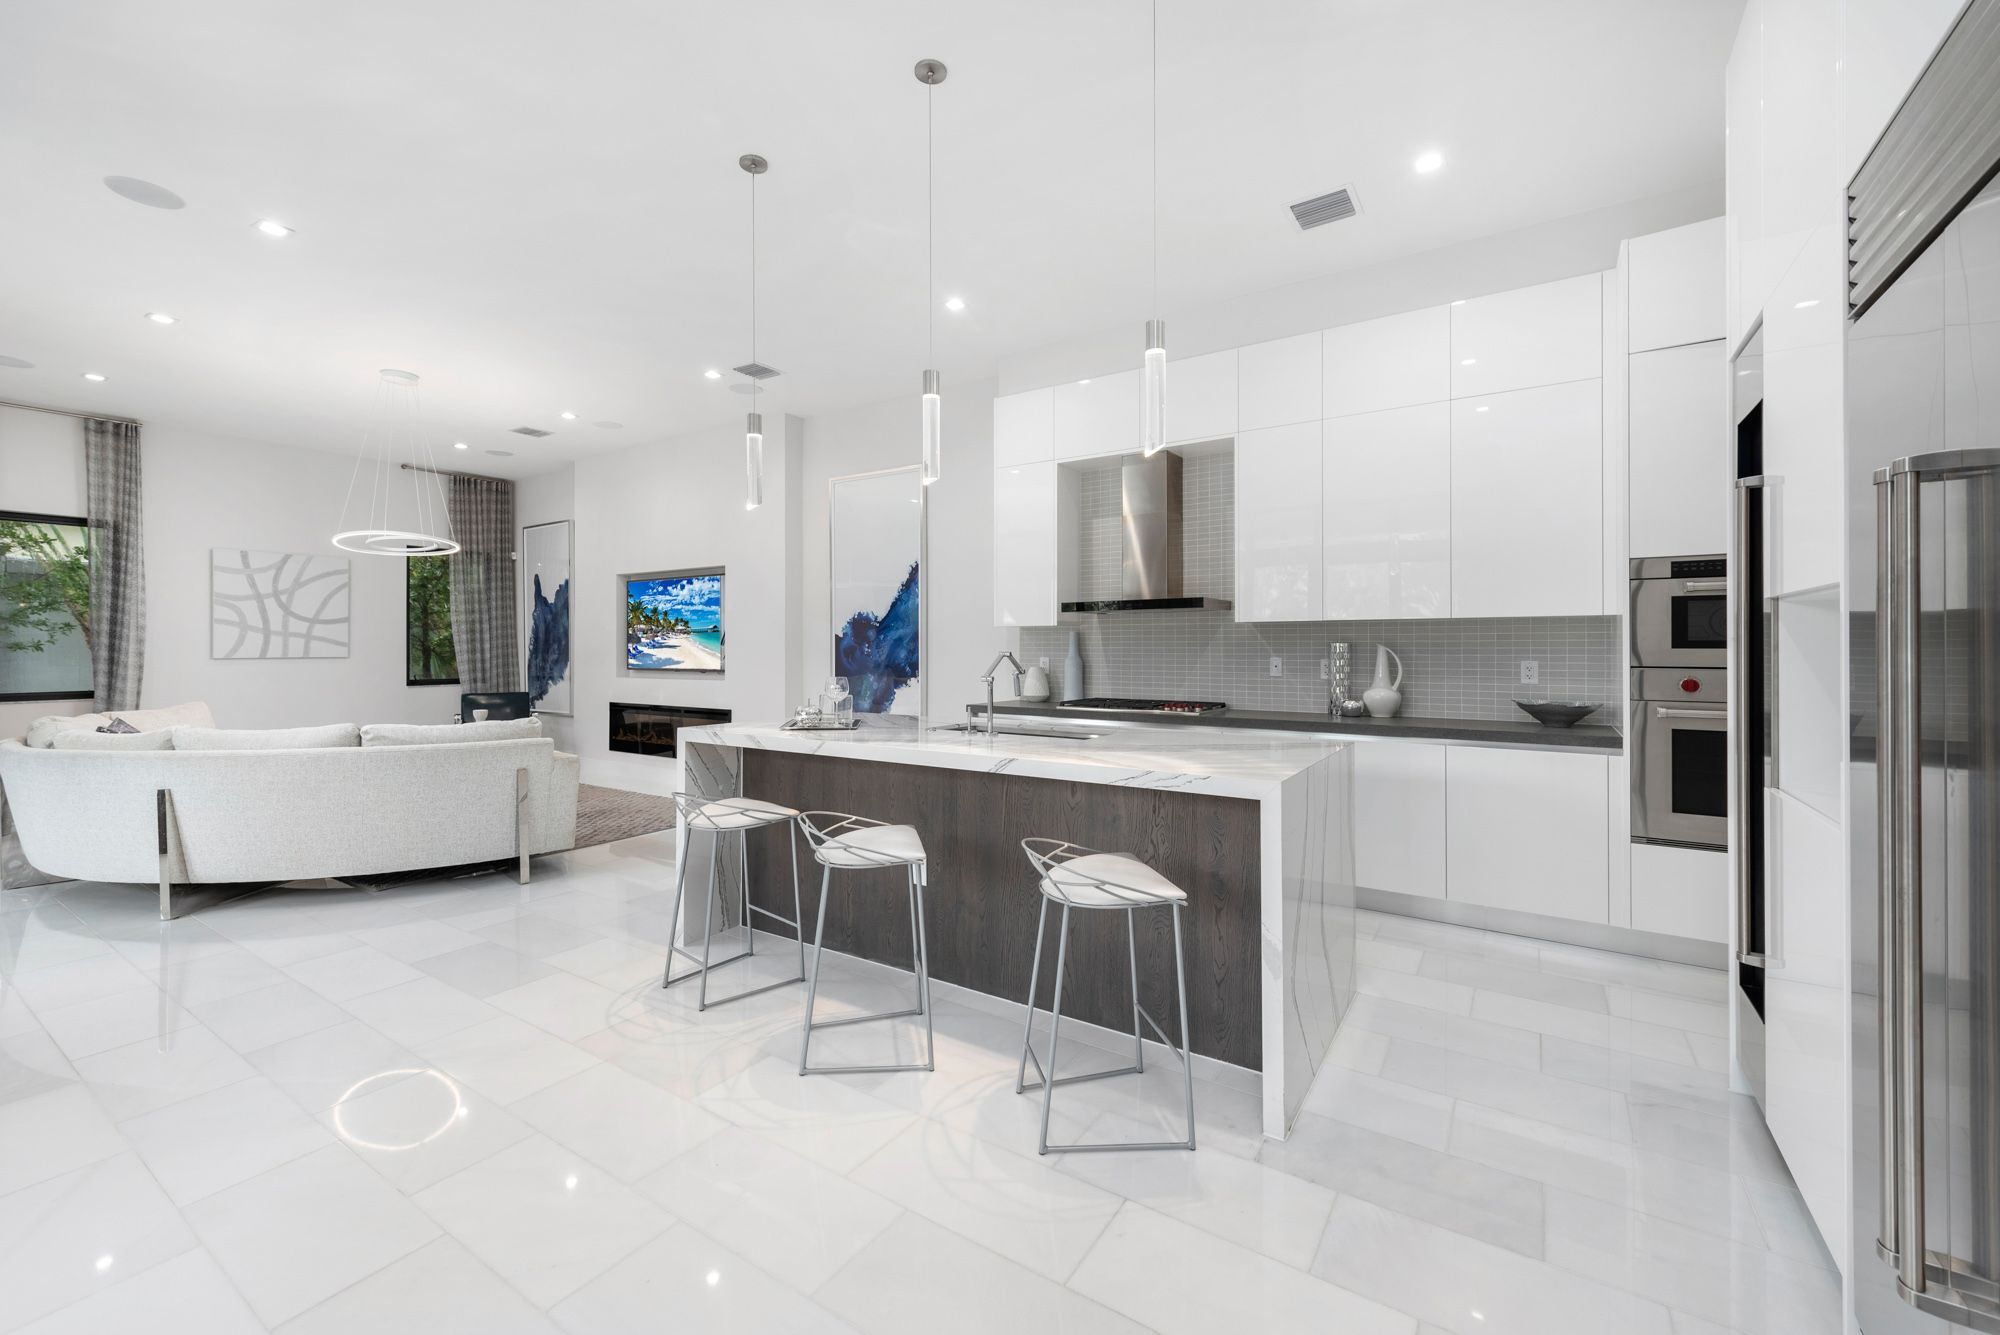 Kitchen featured in the Capri C Three Story By CC Homes in Miami-Dade County, FL